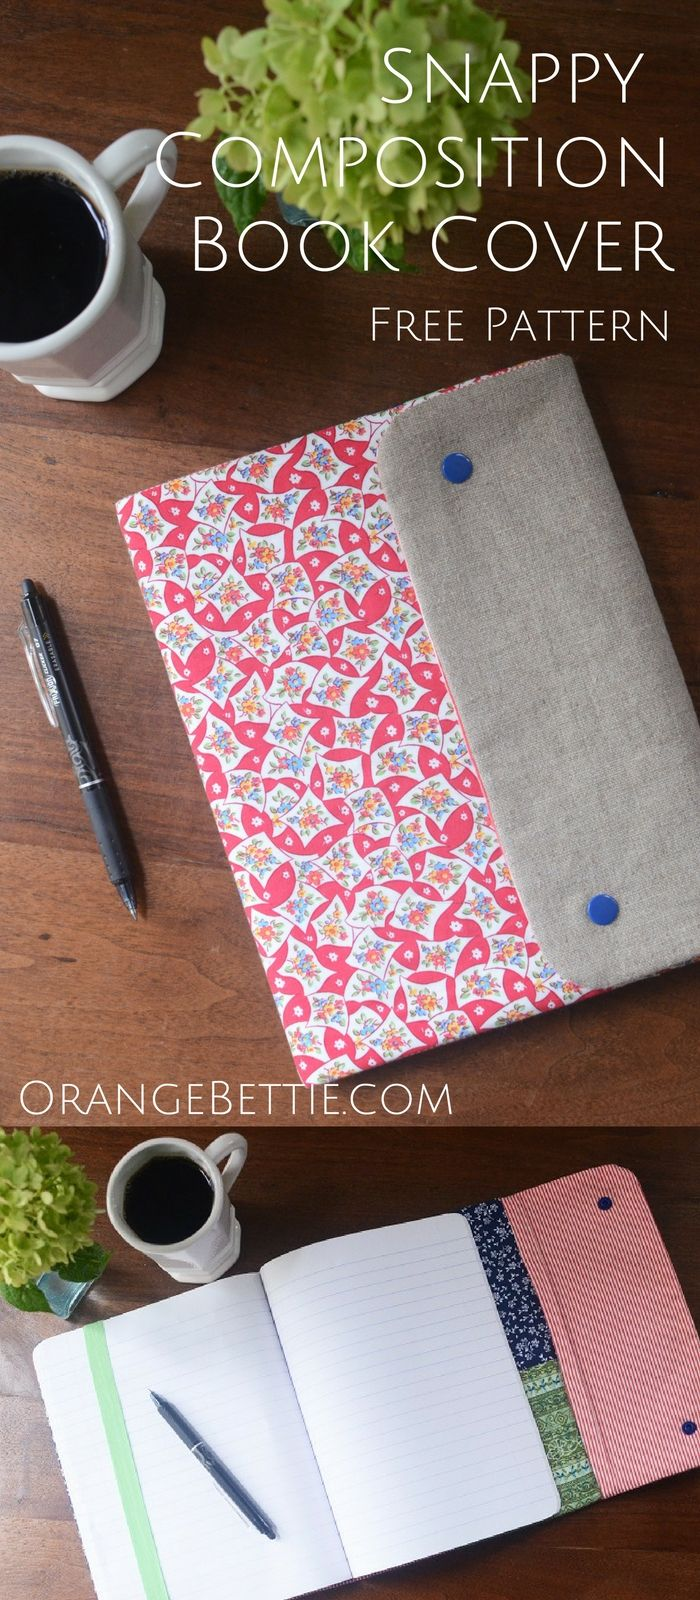 Snappy Composition Book Cover Fabric Covered Notebook